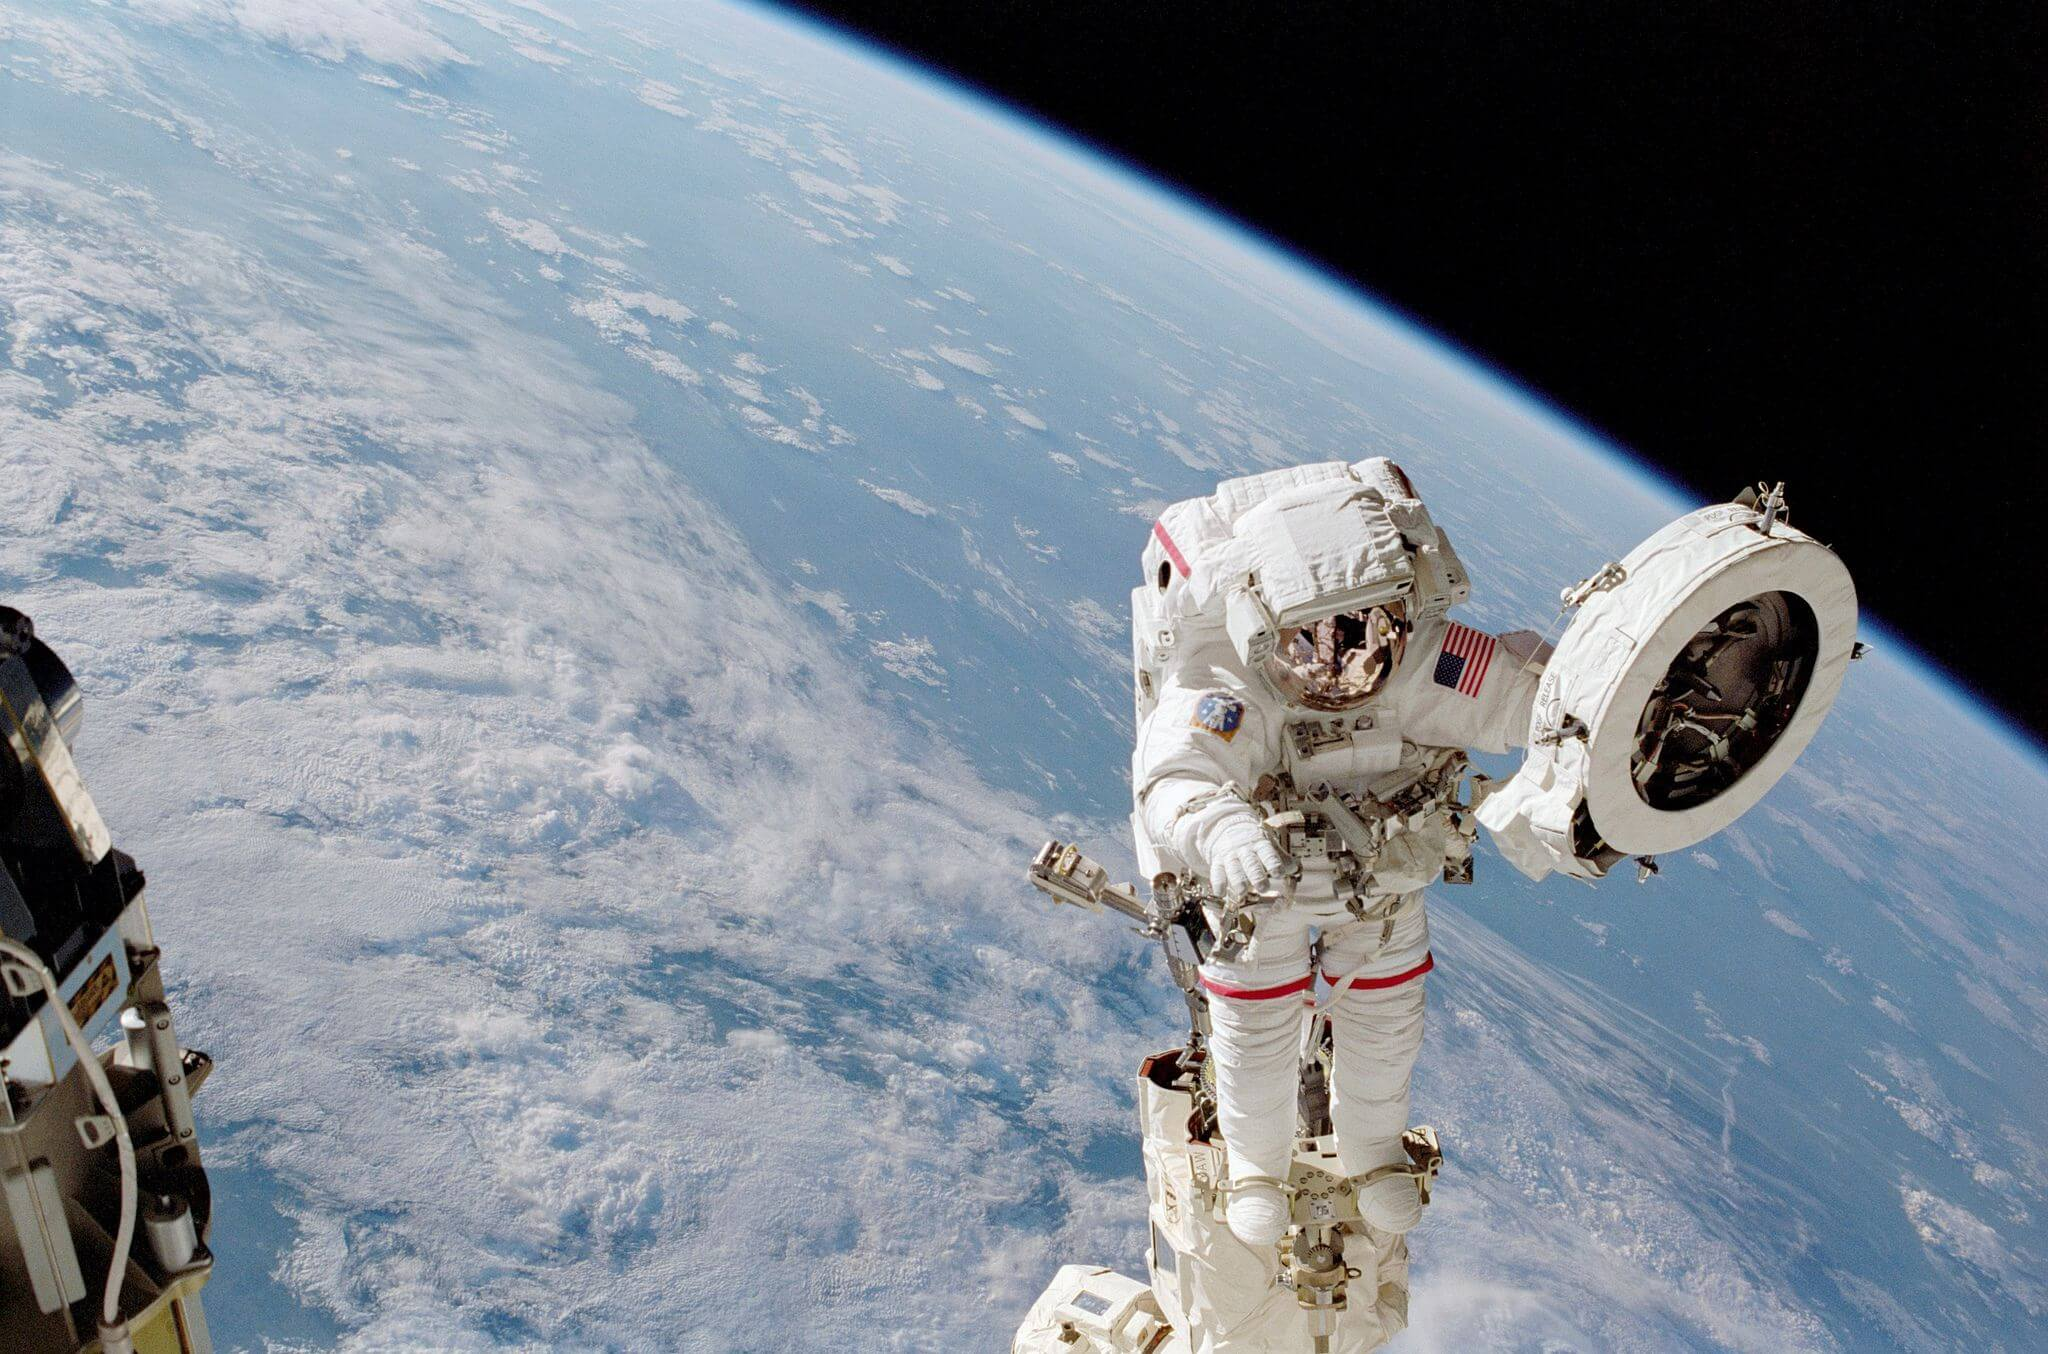 Space flight can be more dangerous for people than anticipated